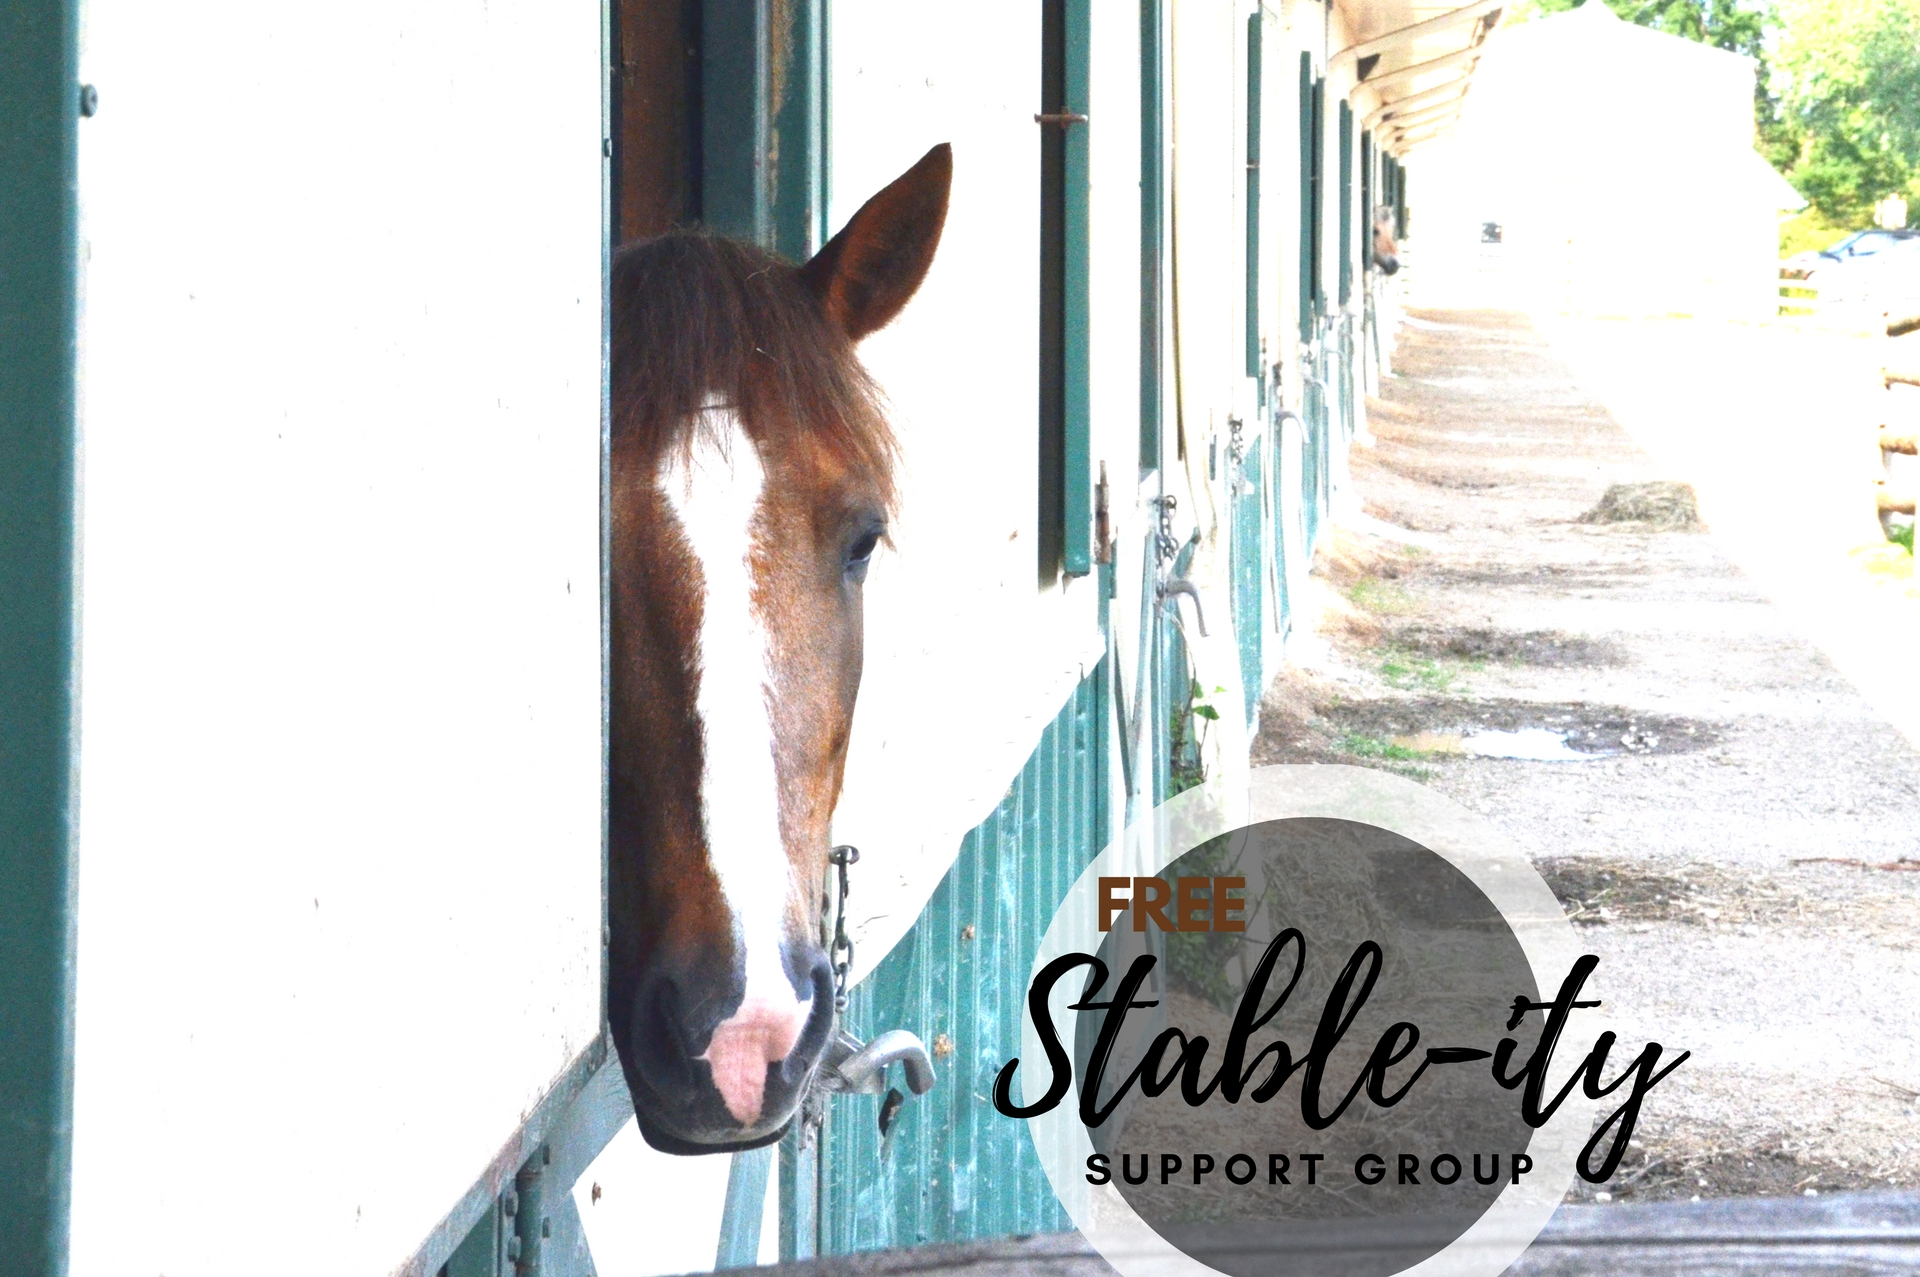 horse therapy equestrian connection Horse Therapy | Stable-ity - Self Care 4/2-5/7 Mondays